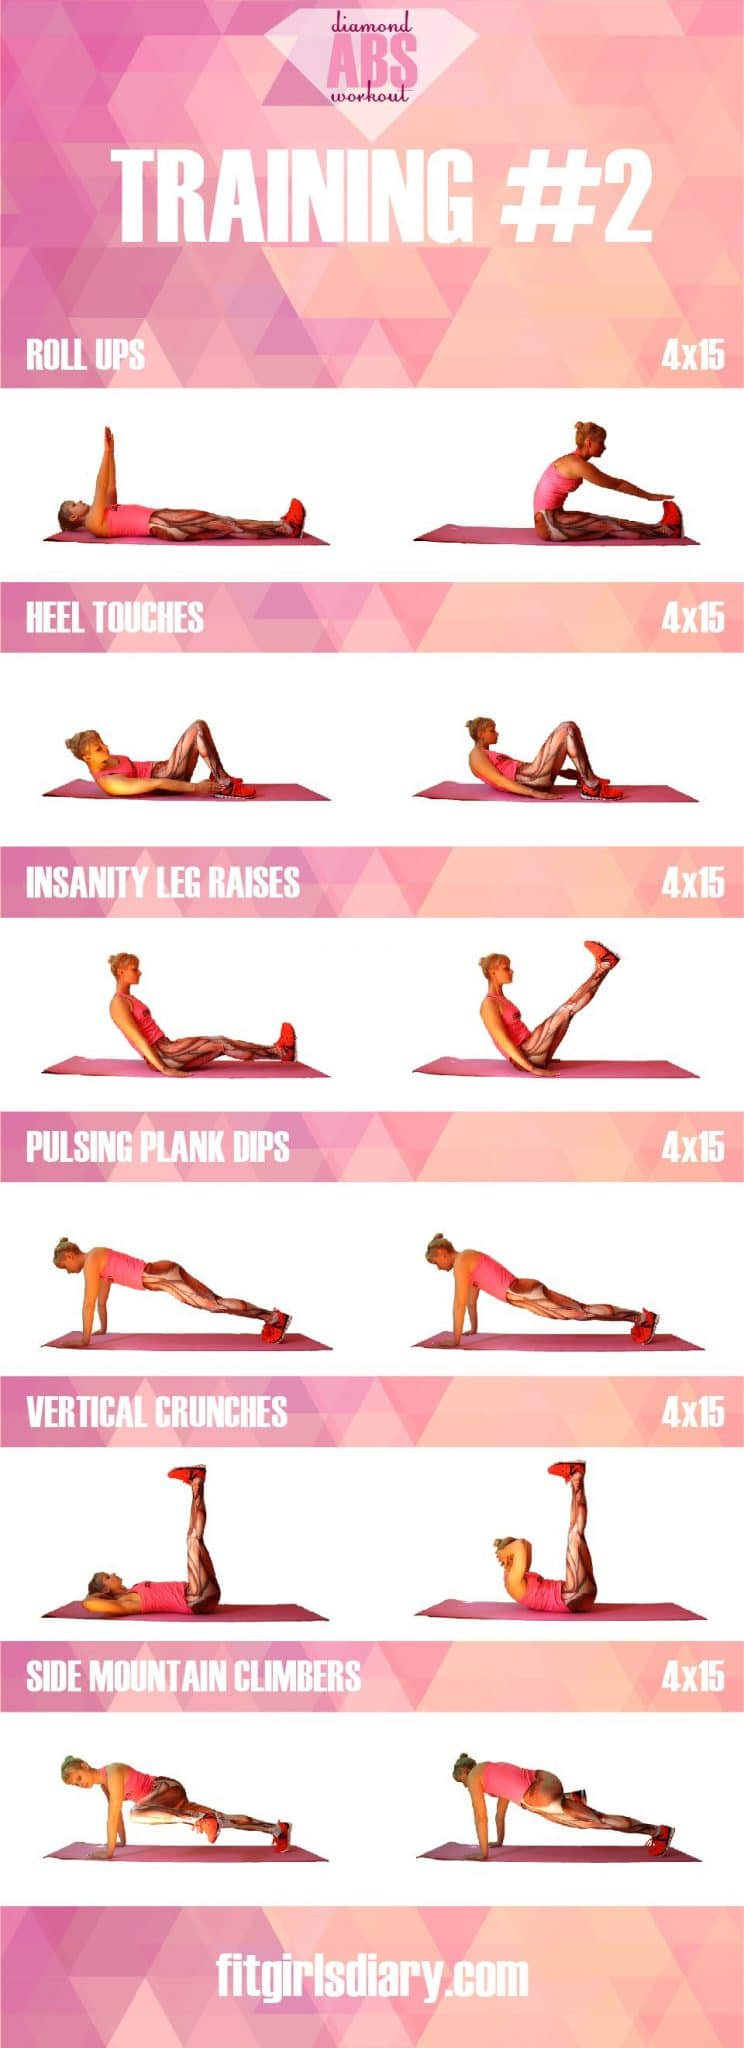 Gym ab workouts female